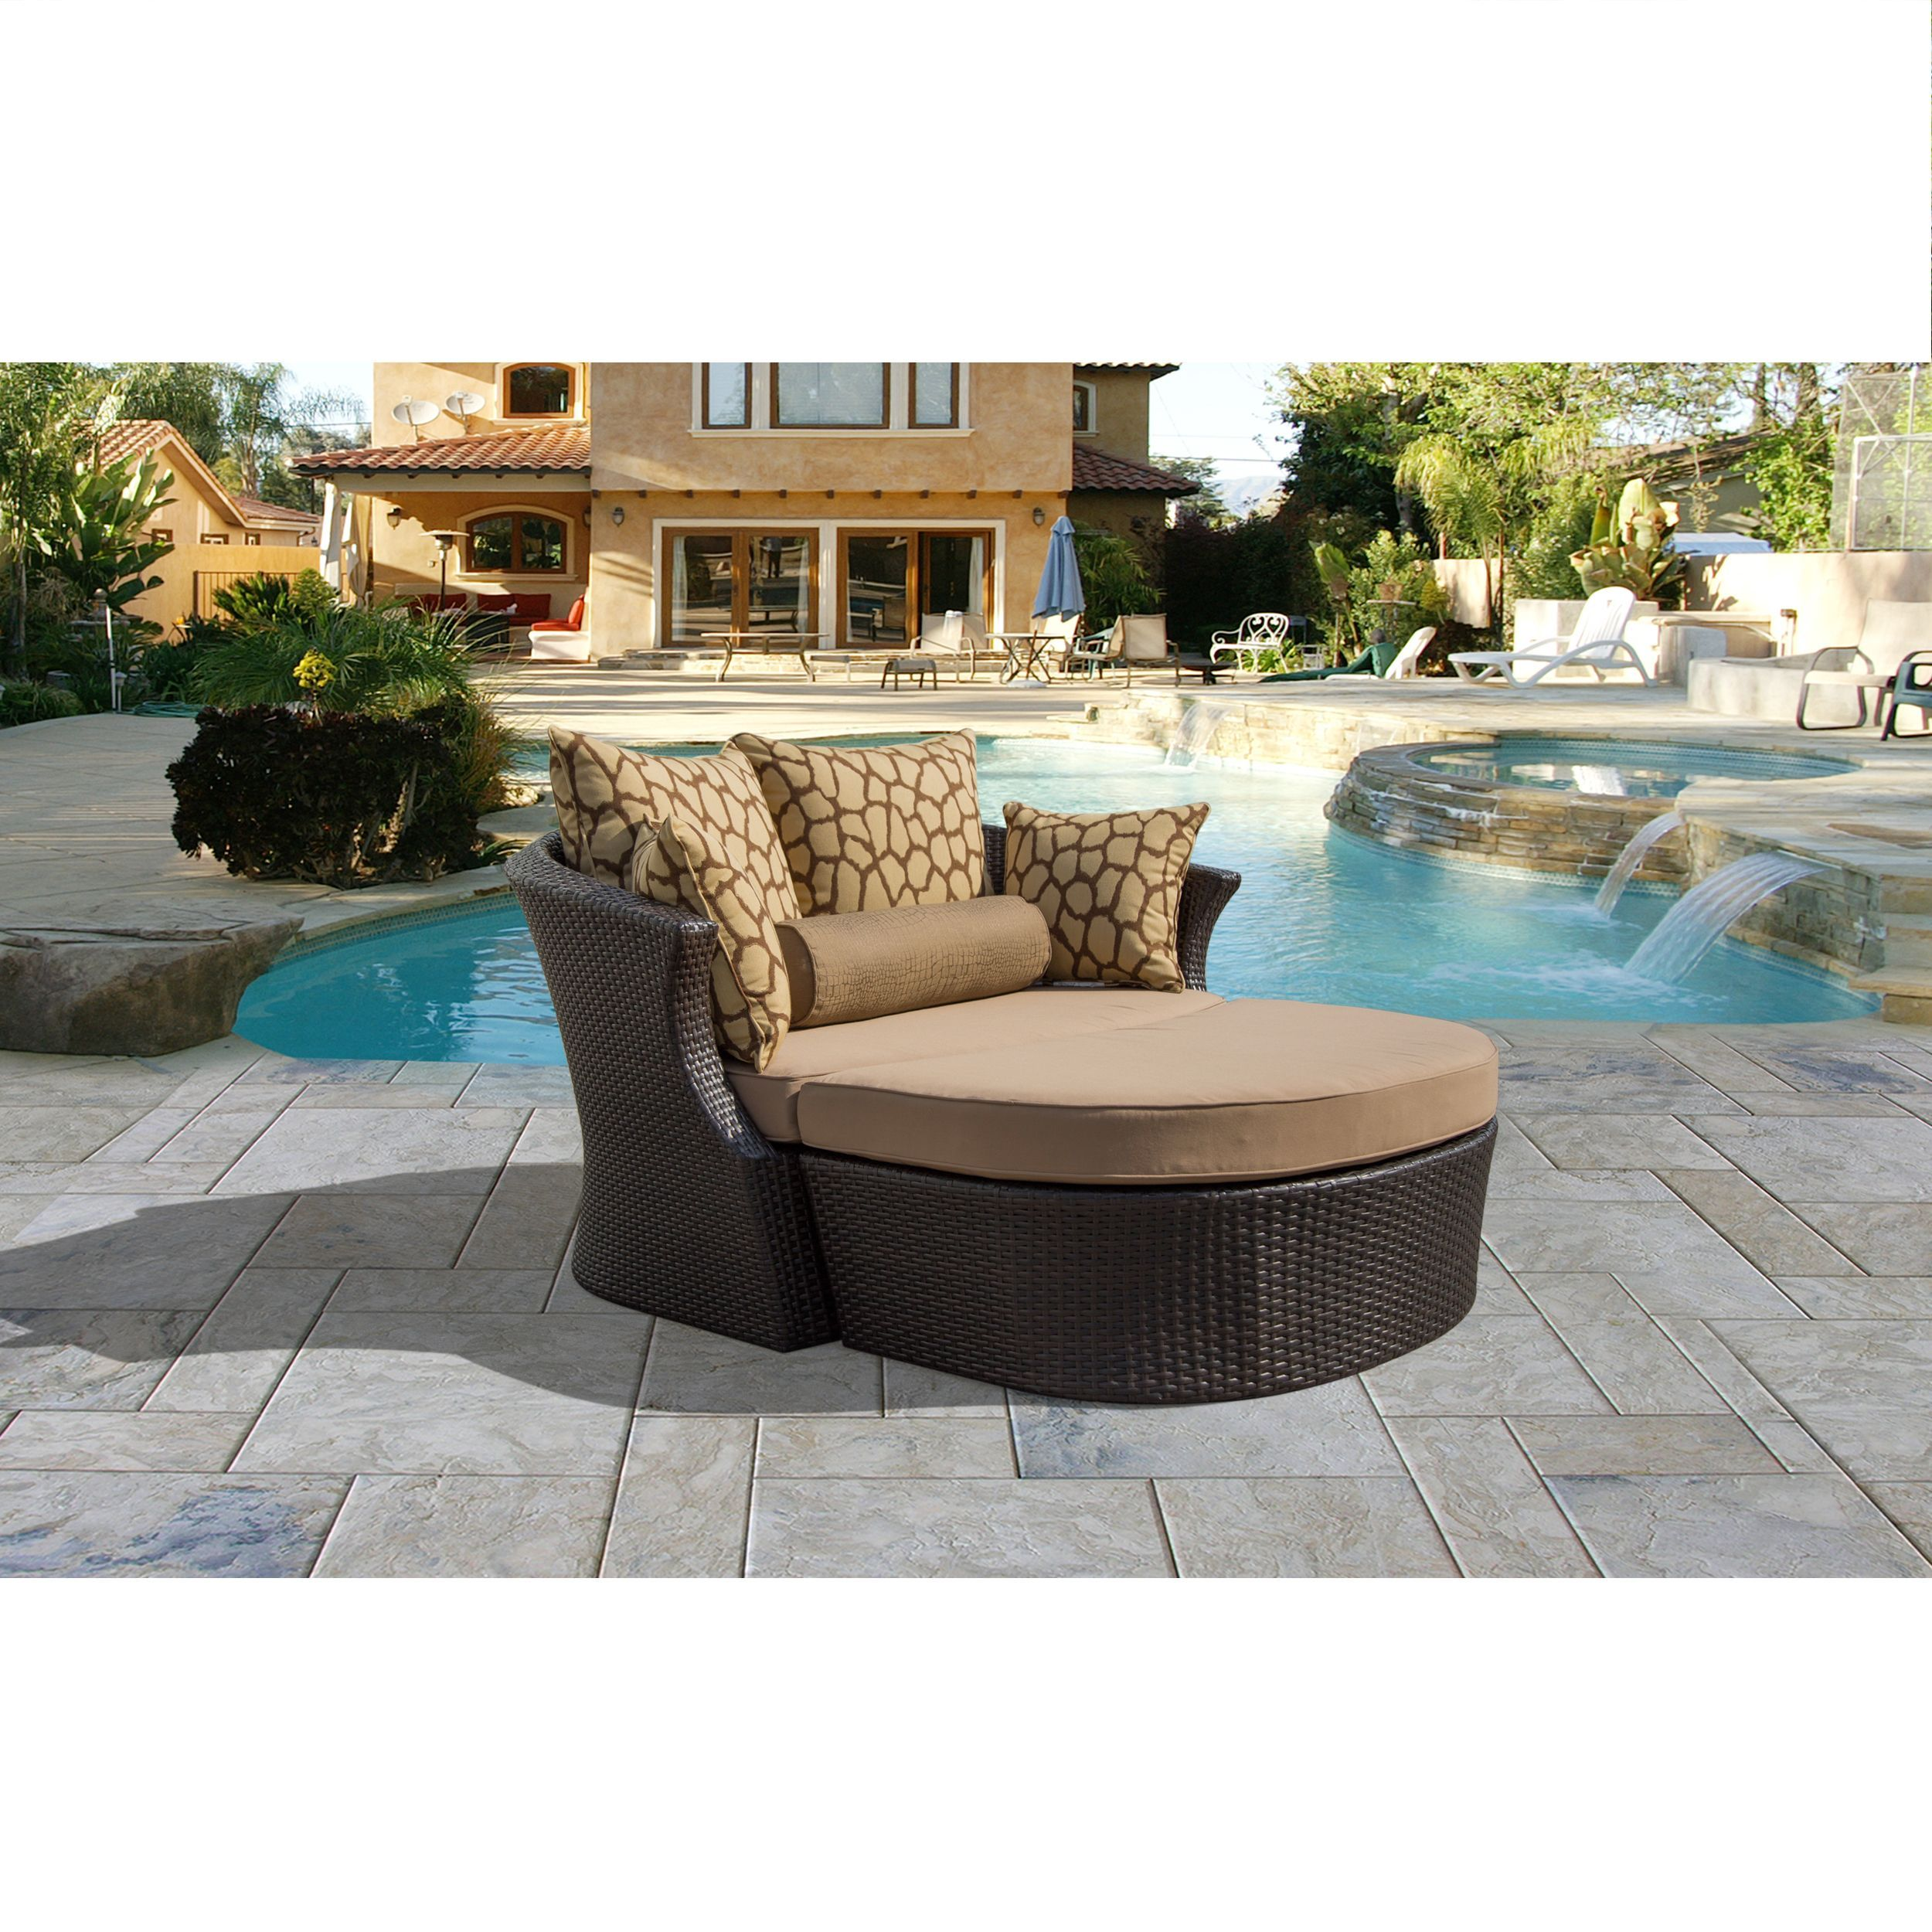 Corvus Shotiva Outdoor Furniture 2 piece Daybed with Sunbrella